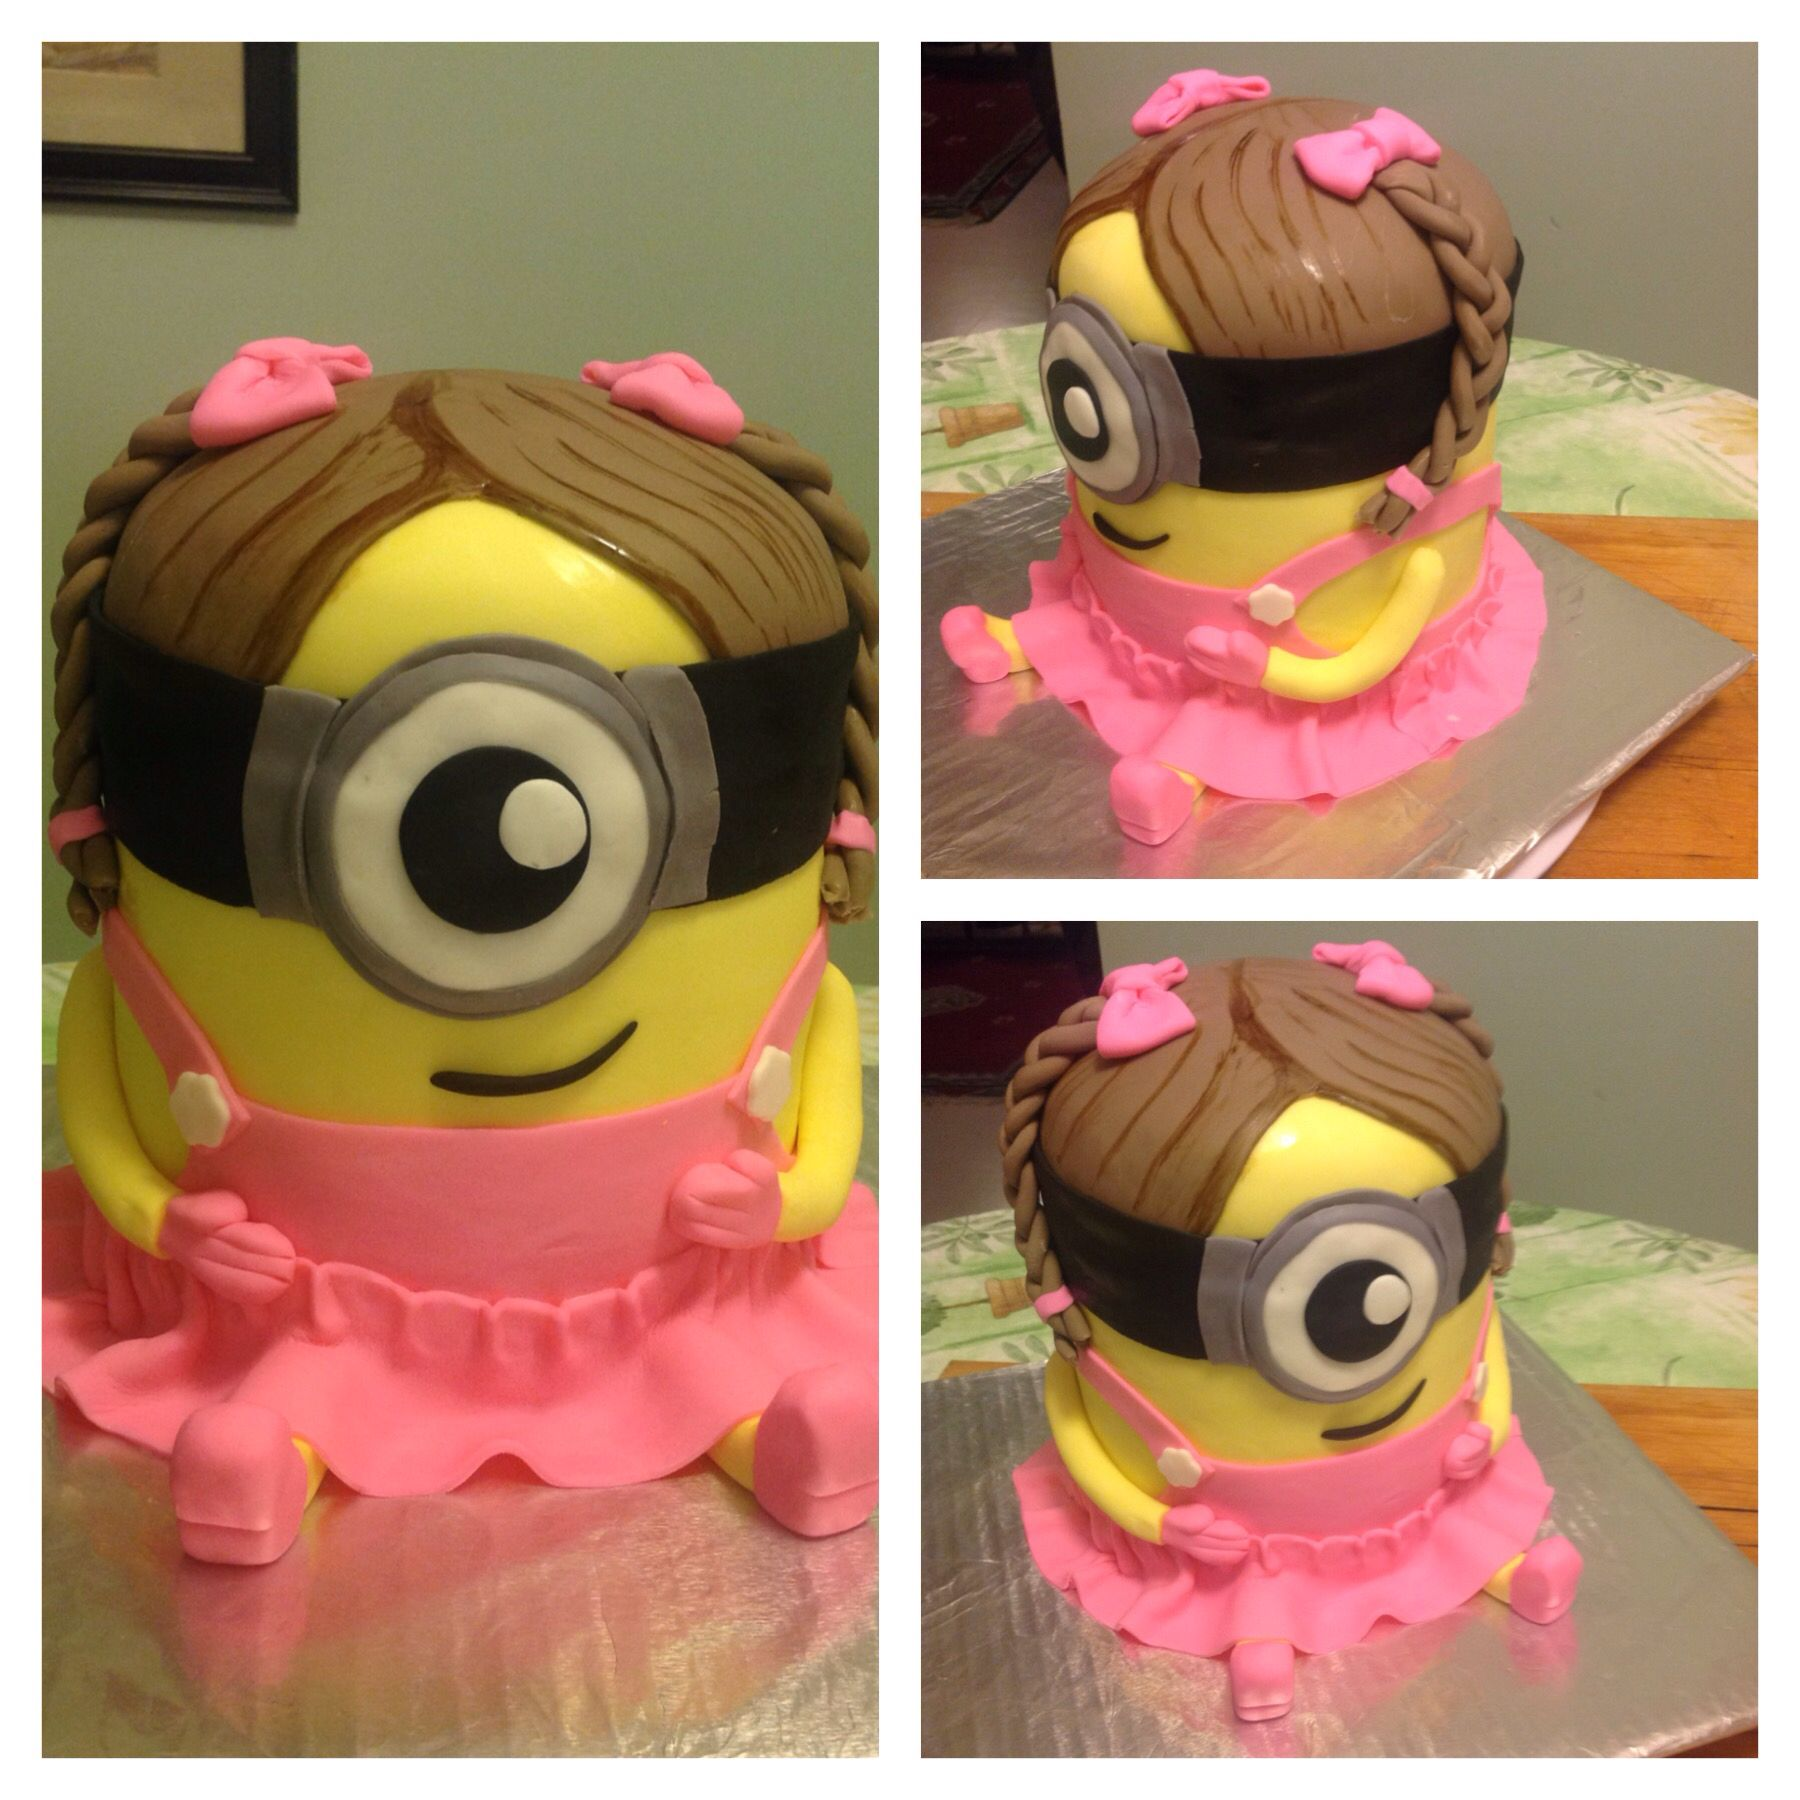 Girl Minion cake for a family member made with fondant